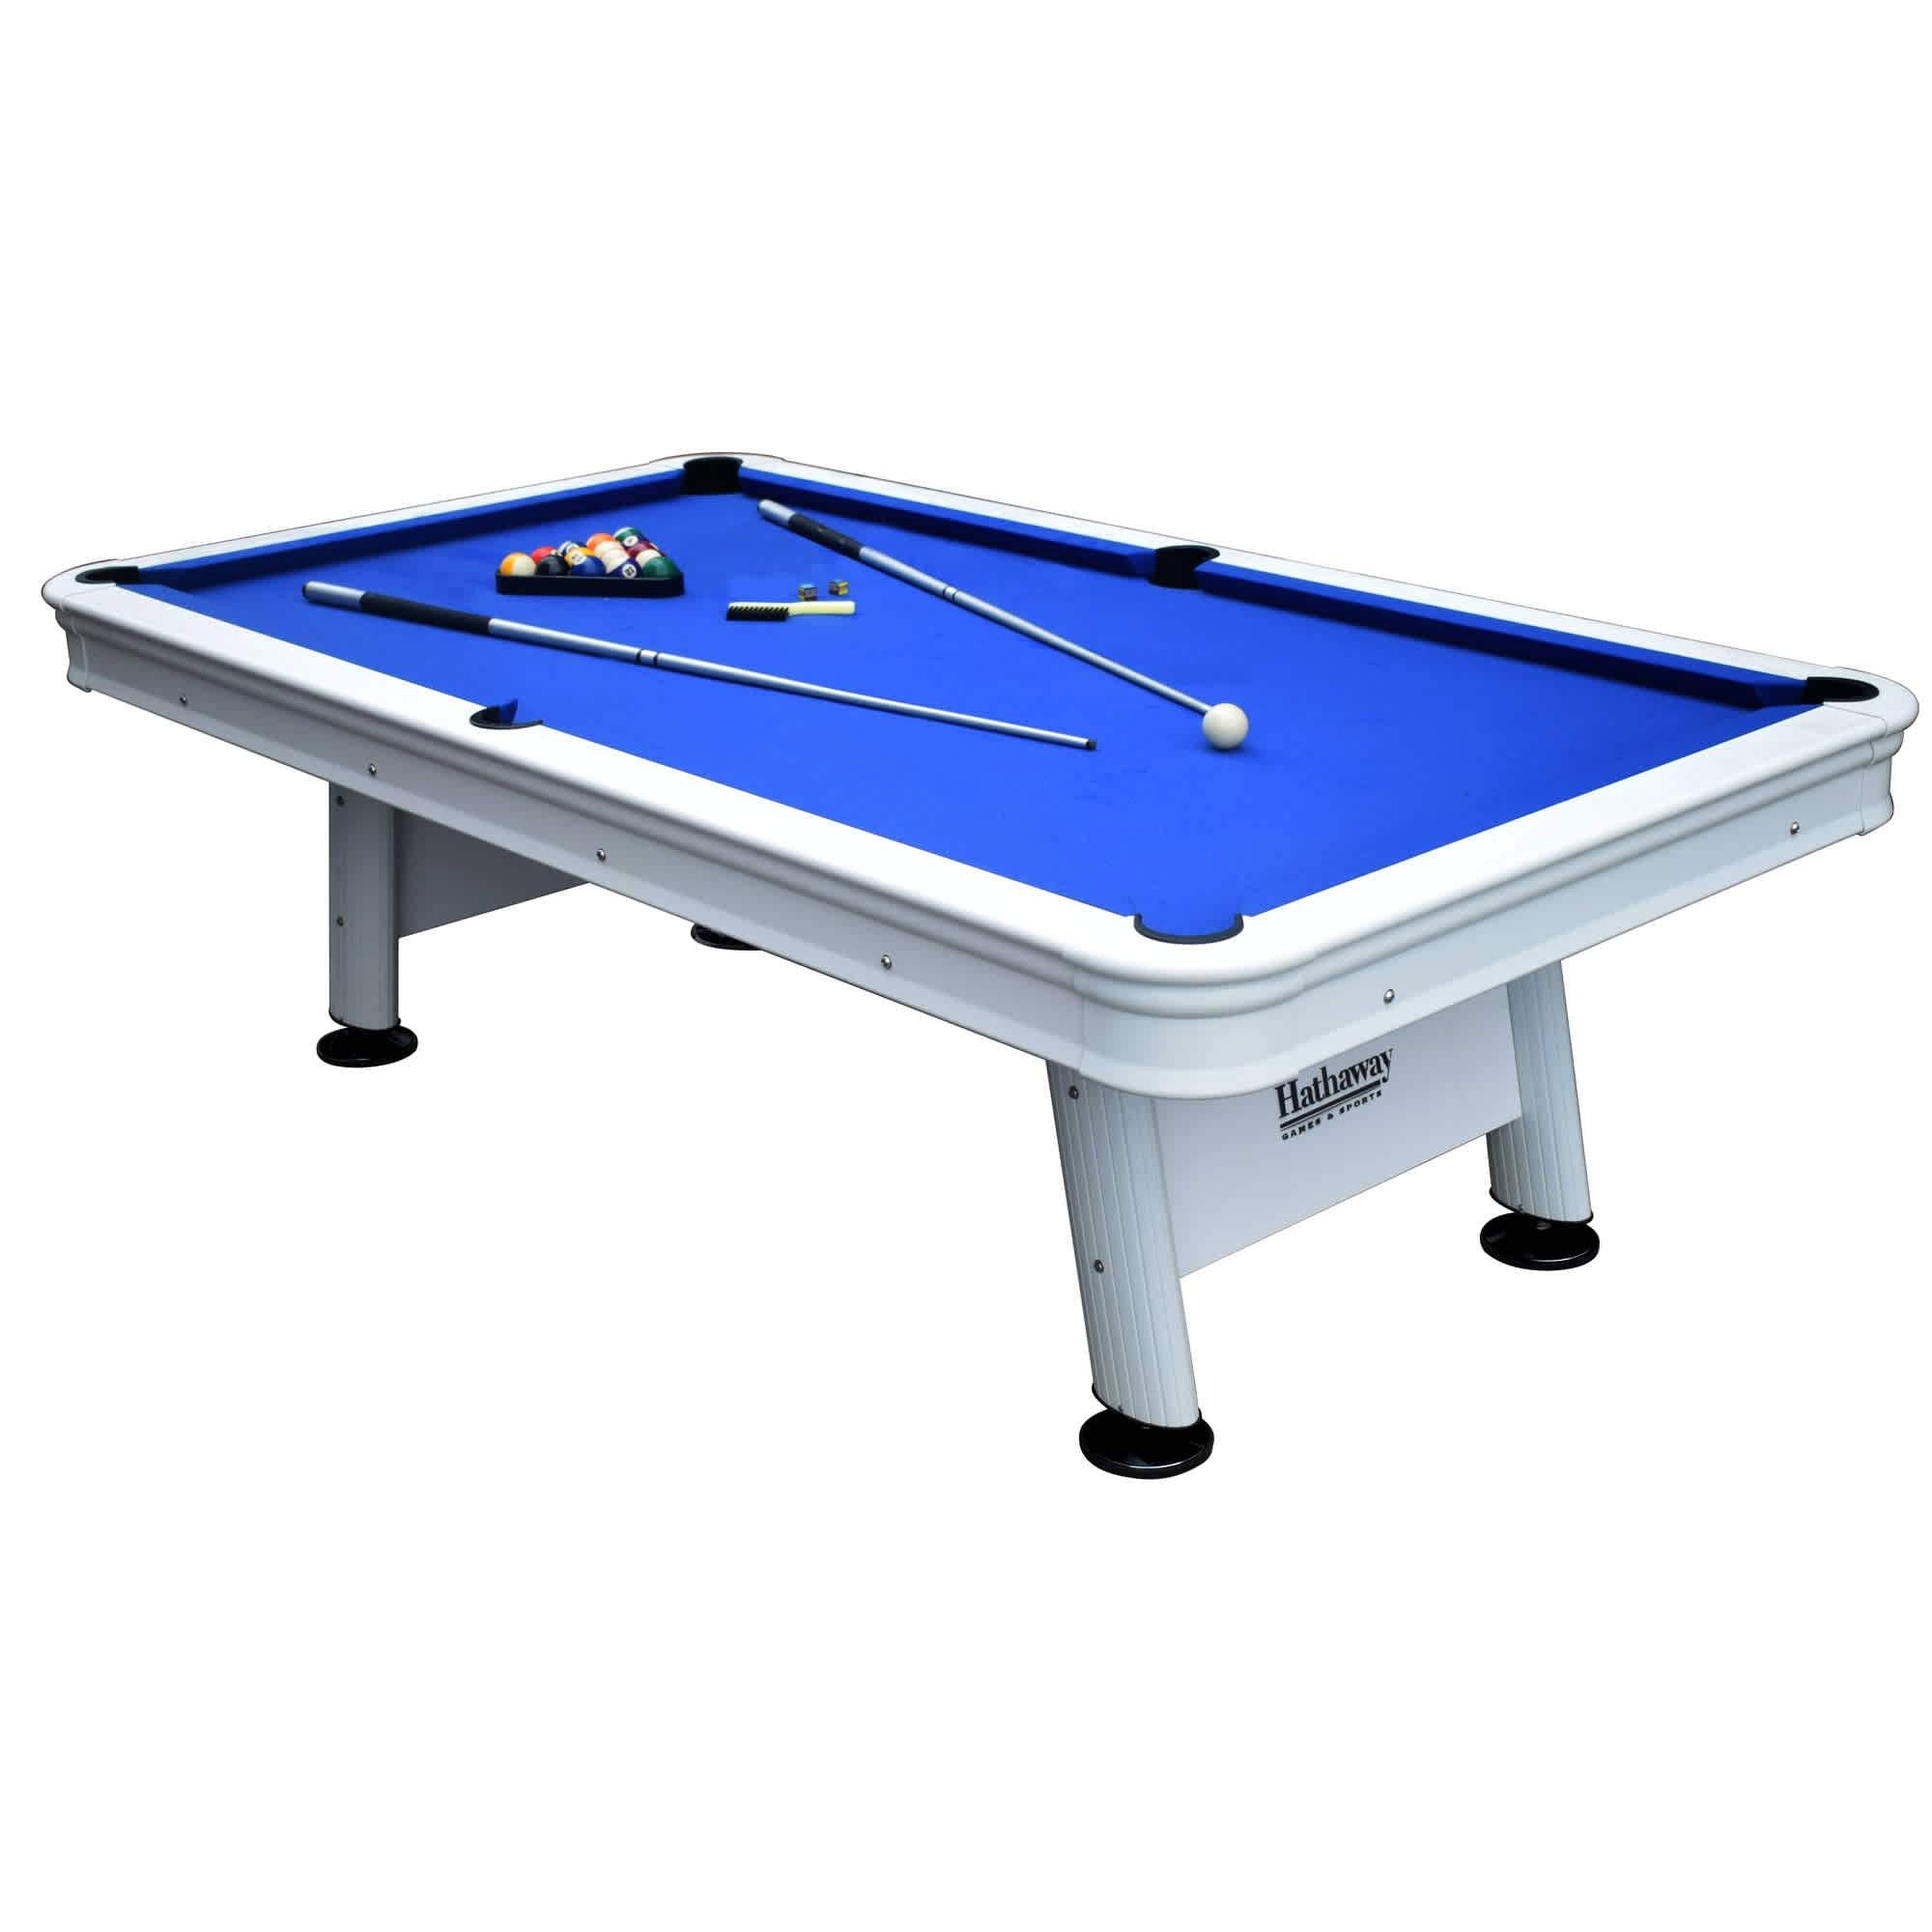 Hathaway Alpine Waterproof 8ft Outdoor Pool Table - Gaming Blaze